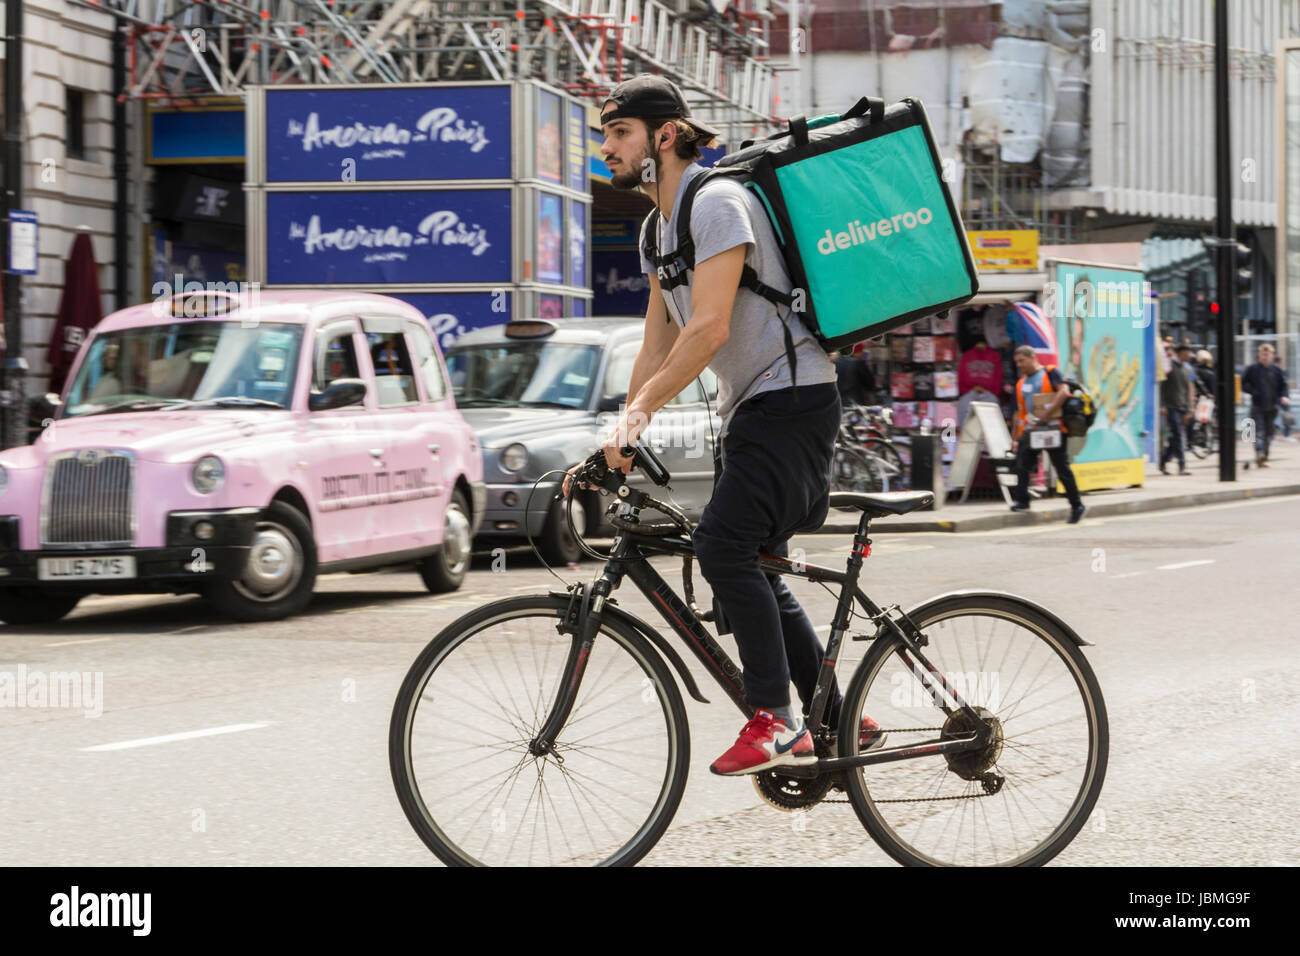 A Deliveroo cyclist on his bike in central London, UK Stock Photo